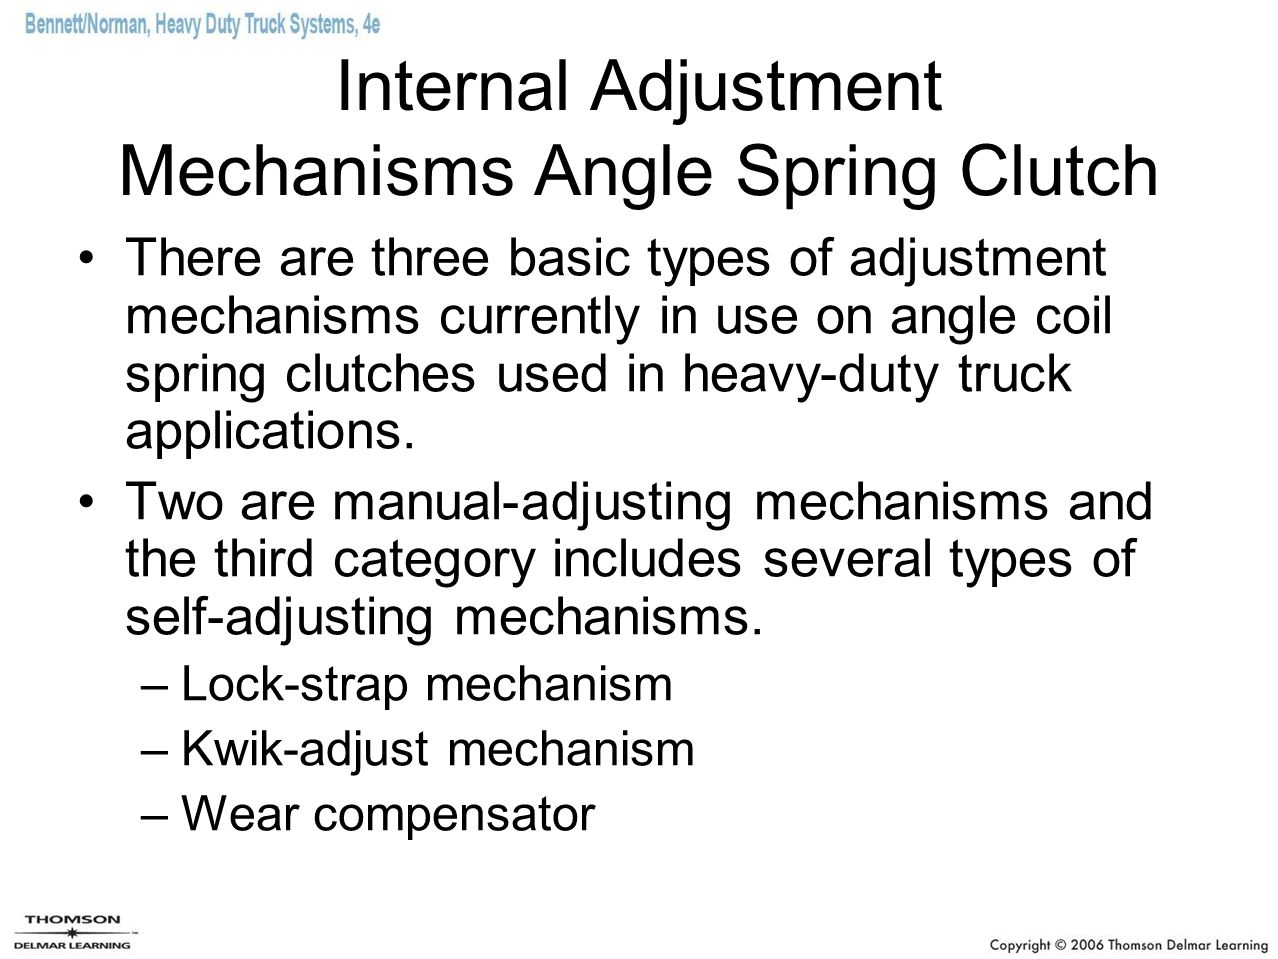 Internal Adjustment Mechanisms Angle Spring Clutch